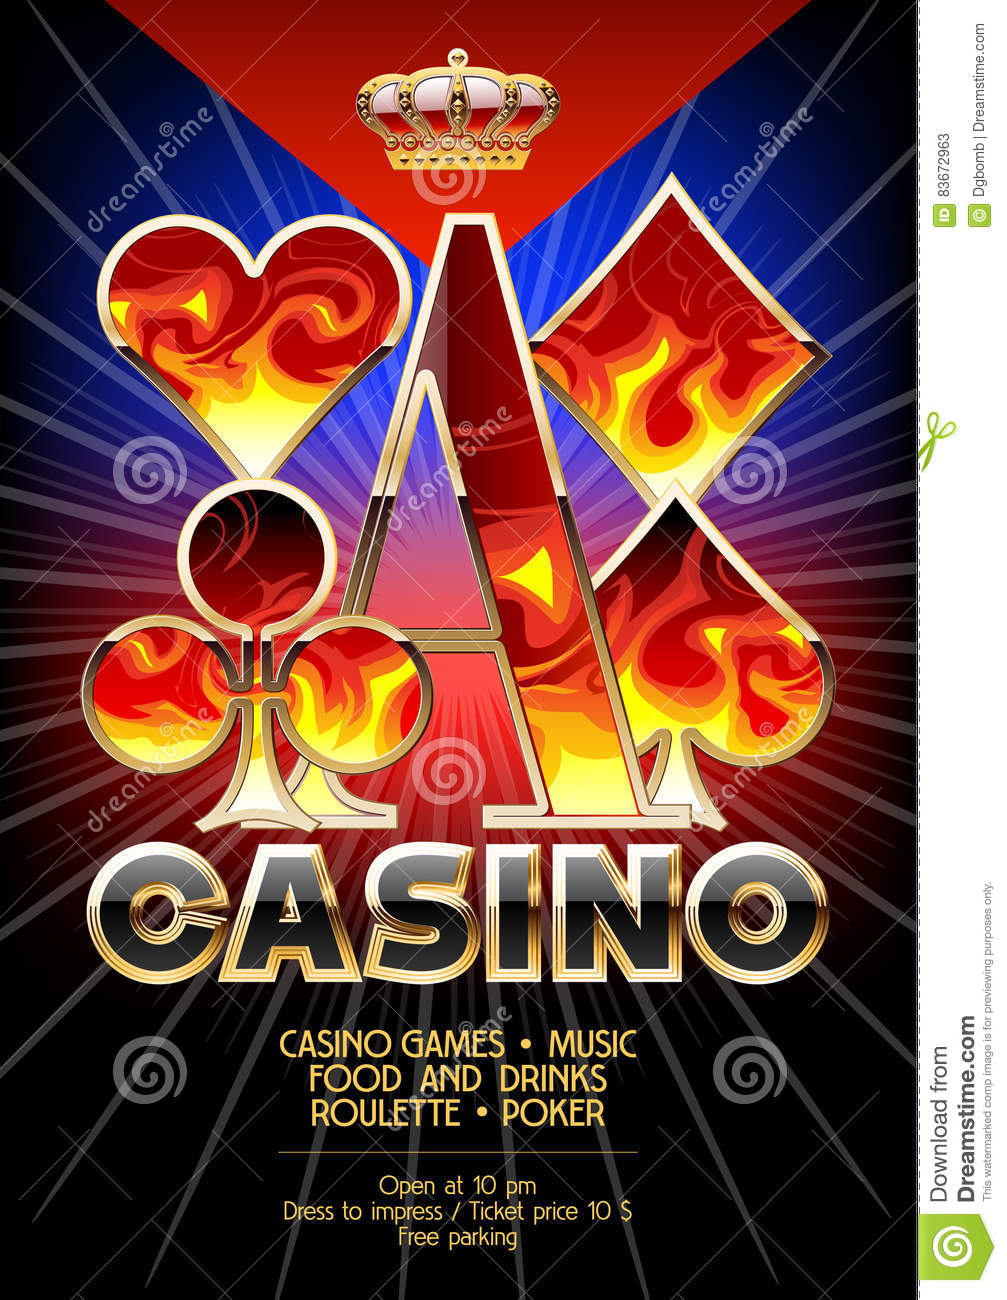 download vector template promo flyer for casino event with flame pattern stock vector illustration of